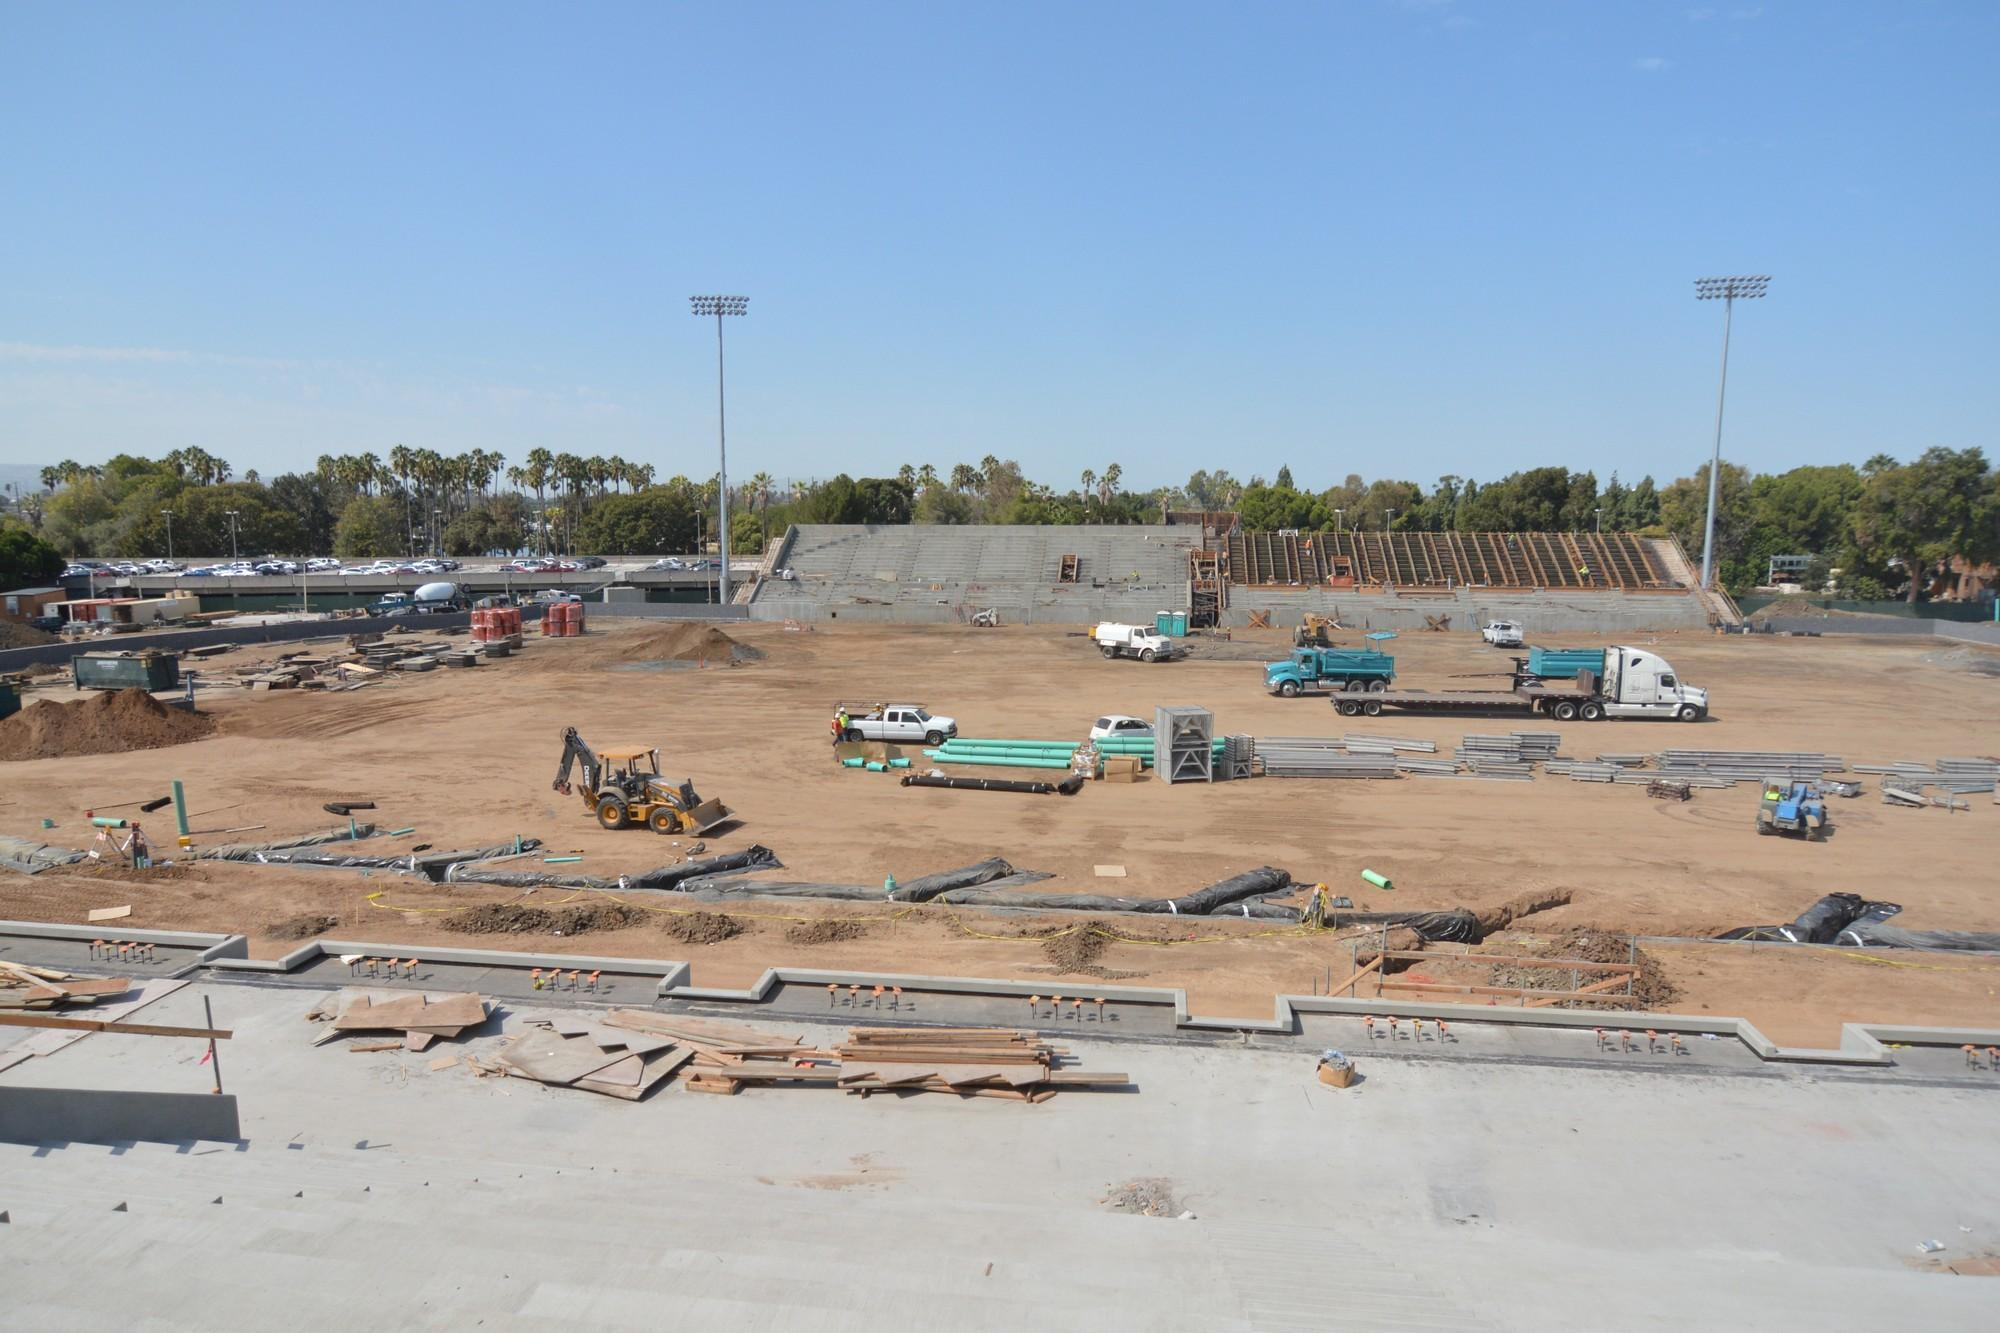 Construction of the new $40 million Murdock Stadium is set to be completed by the end of the year. Once finished, the stadium have a dedicated football field, track and athletic training facilities. The new stadium is estimated to hold 8,000 people. Photo credit: John Fordiani